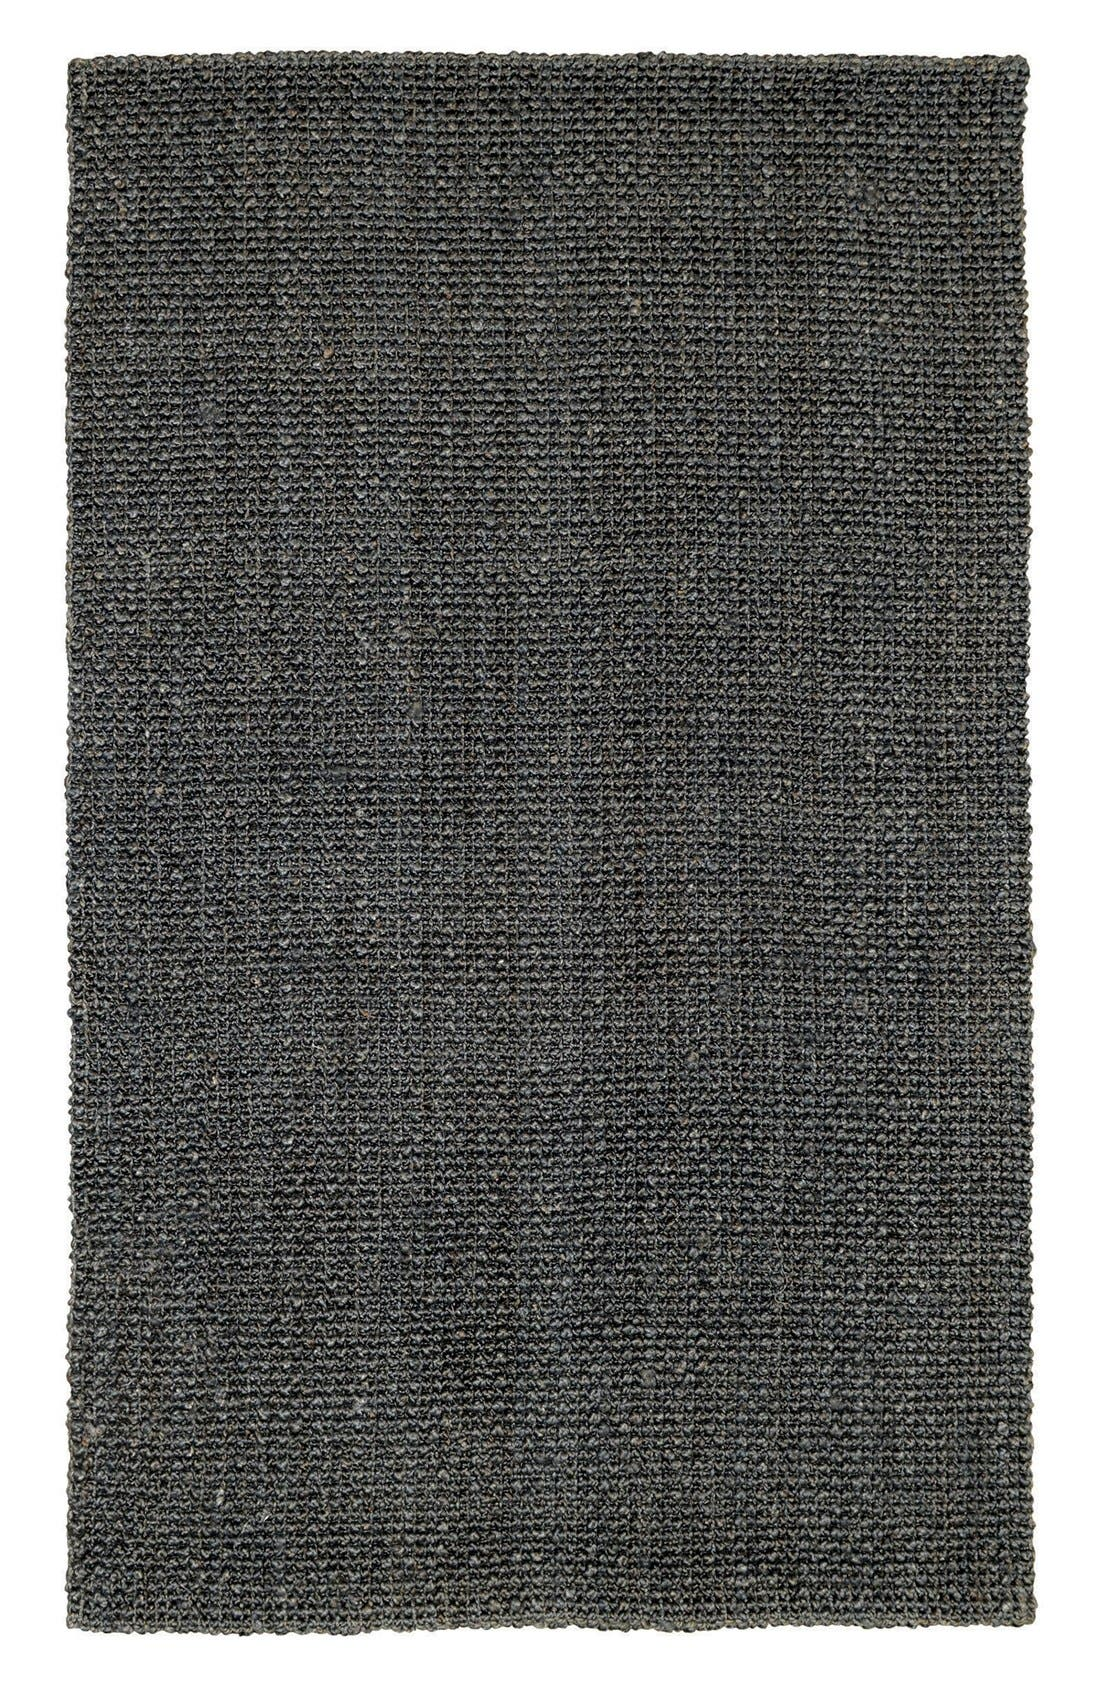 Knobby Loop Handwoven Rug,                             Main thumbnail 1, color,                             Charcoal